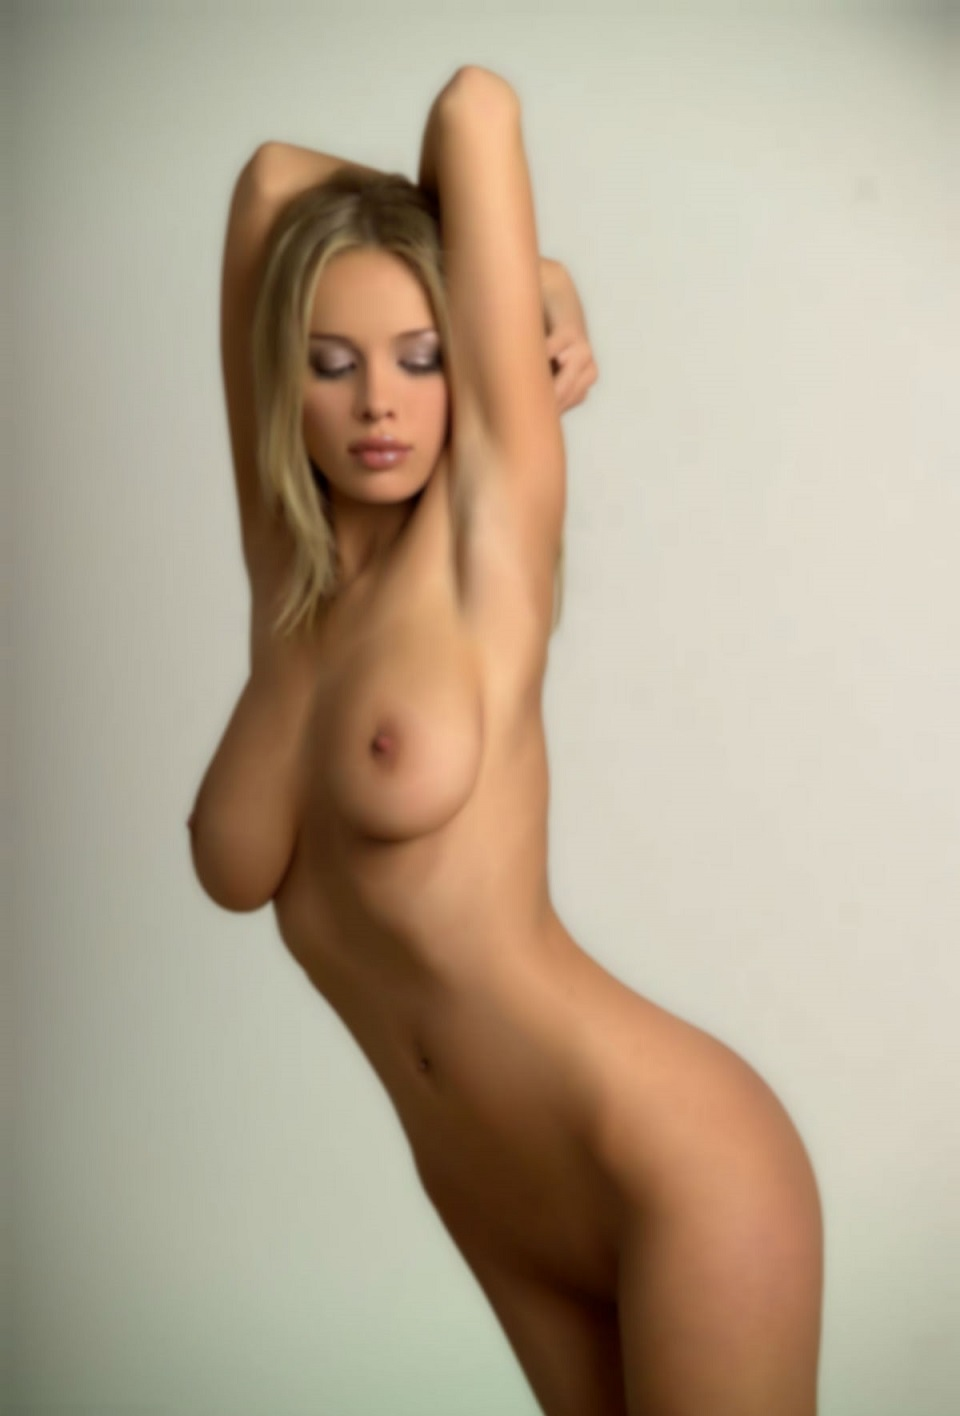 amature sex tapes elite paris escorts